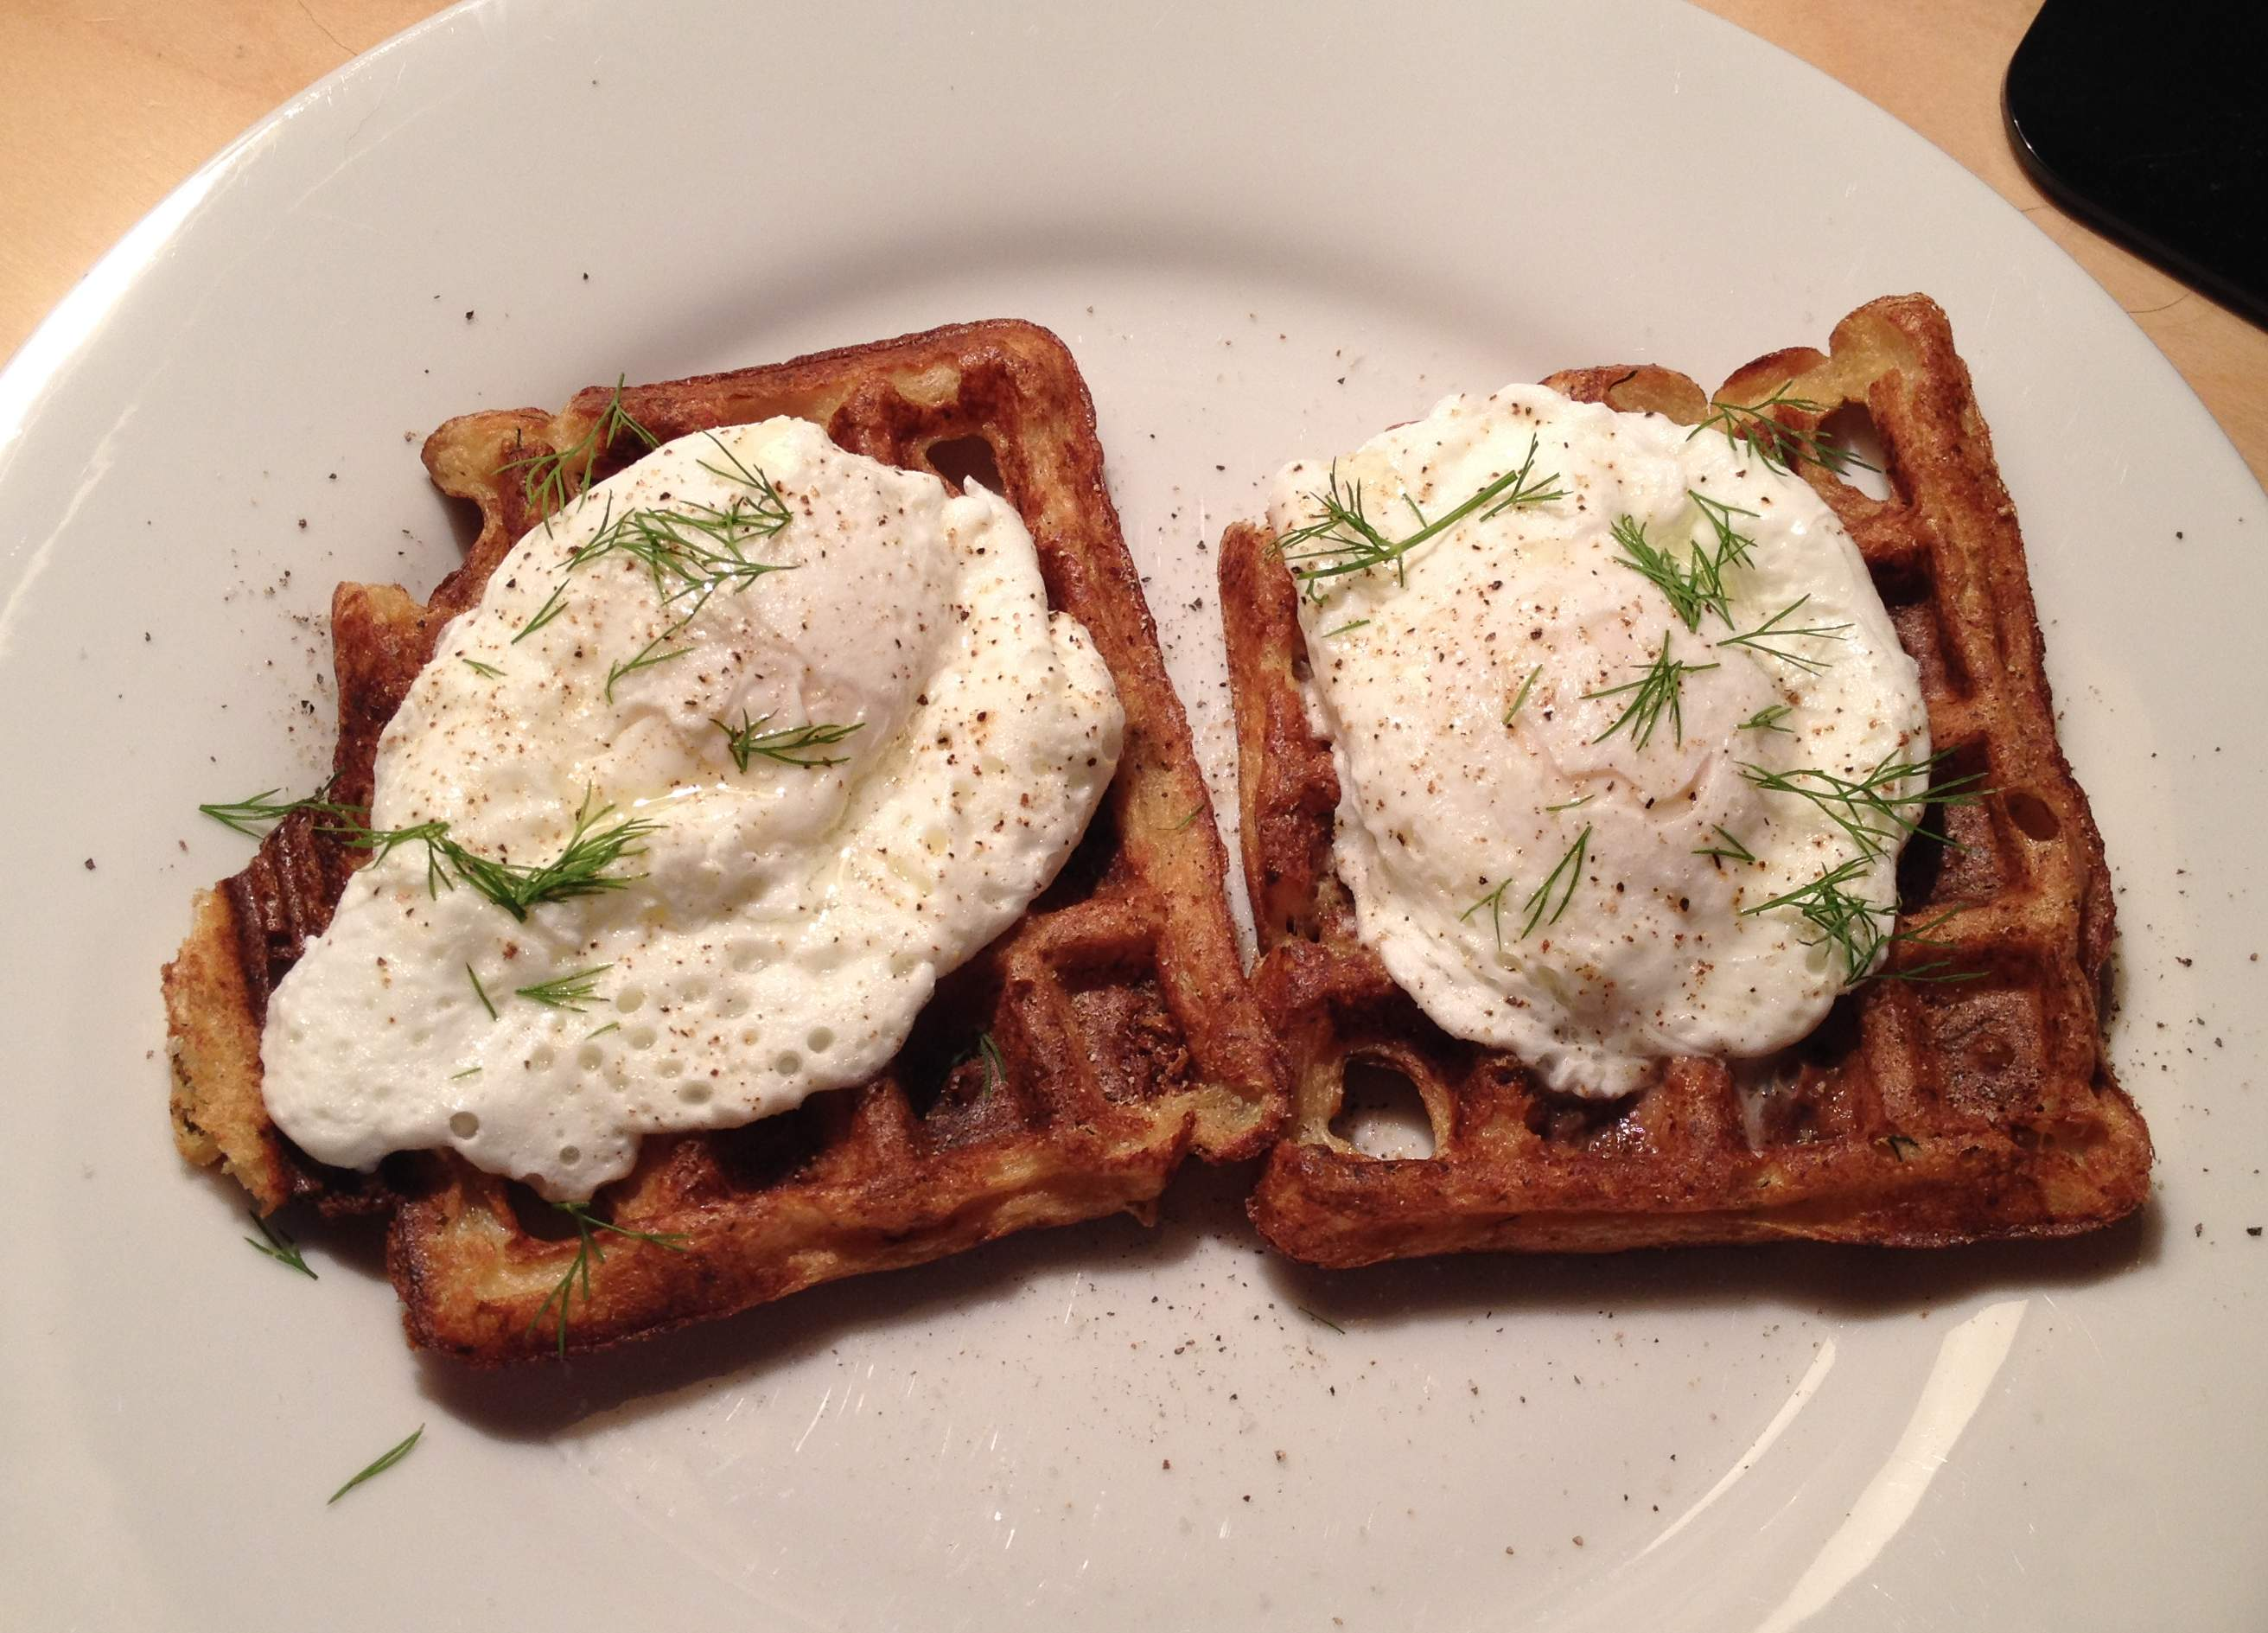 Mashed Cauliflower Waffles with Poached Eggs, Truffle Oil, and Fresh Dill